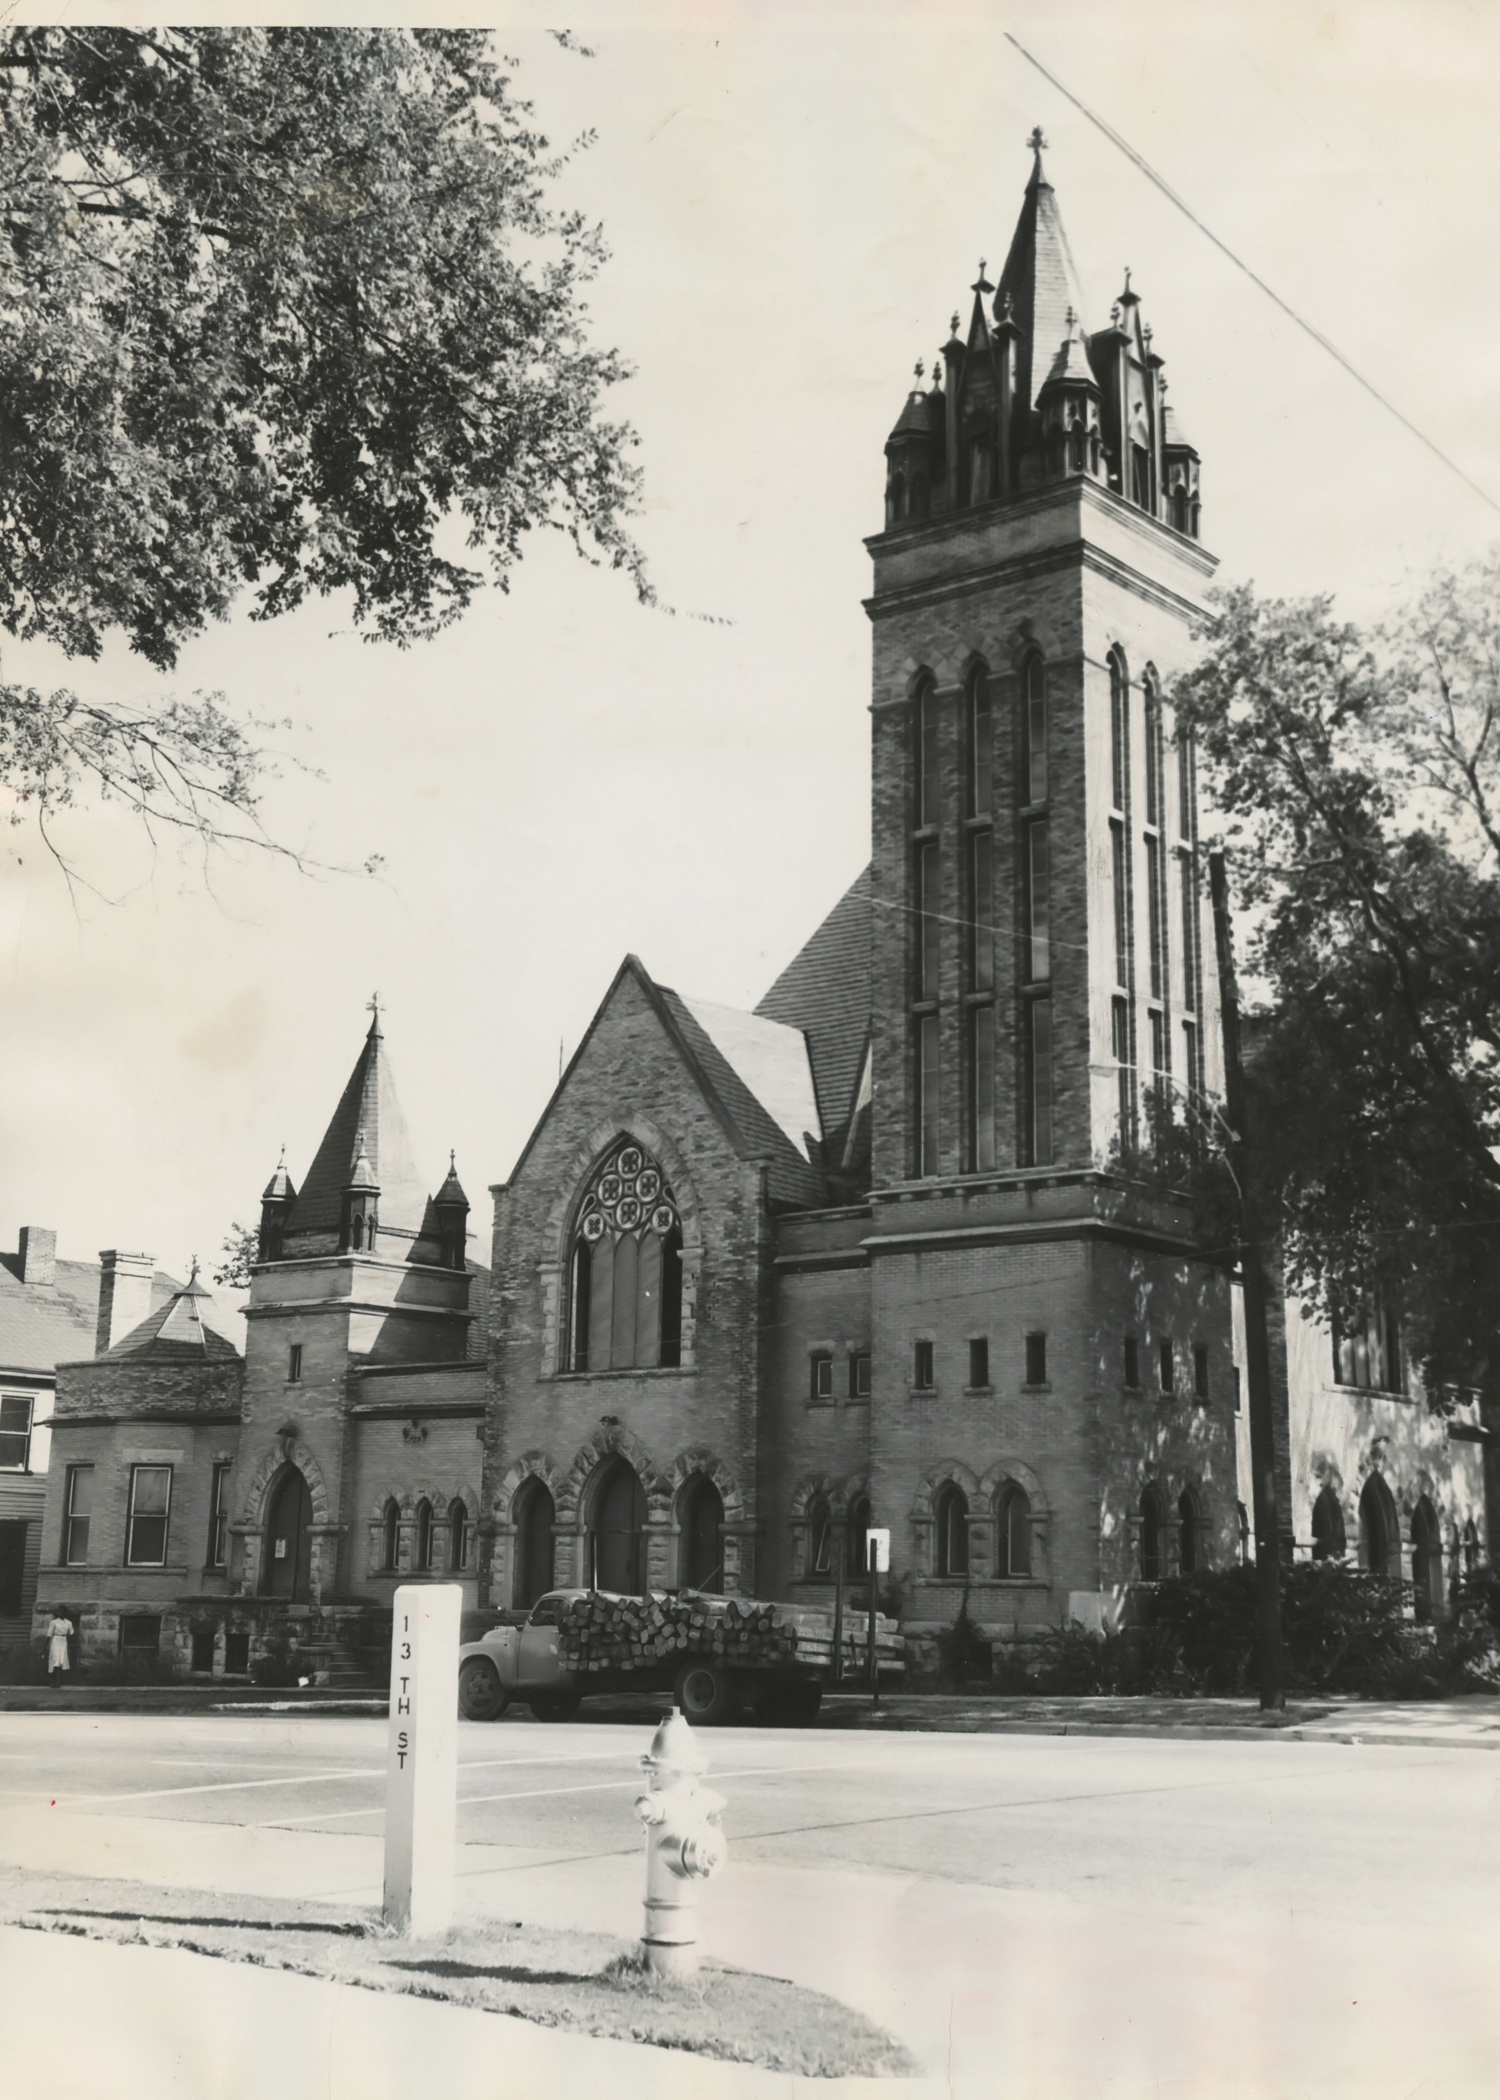 The second St. Paul Methodist Church building on the corner of 13th Street and 3rd Avenue.